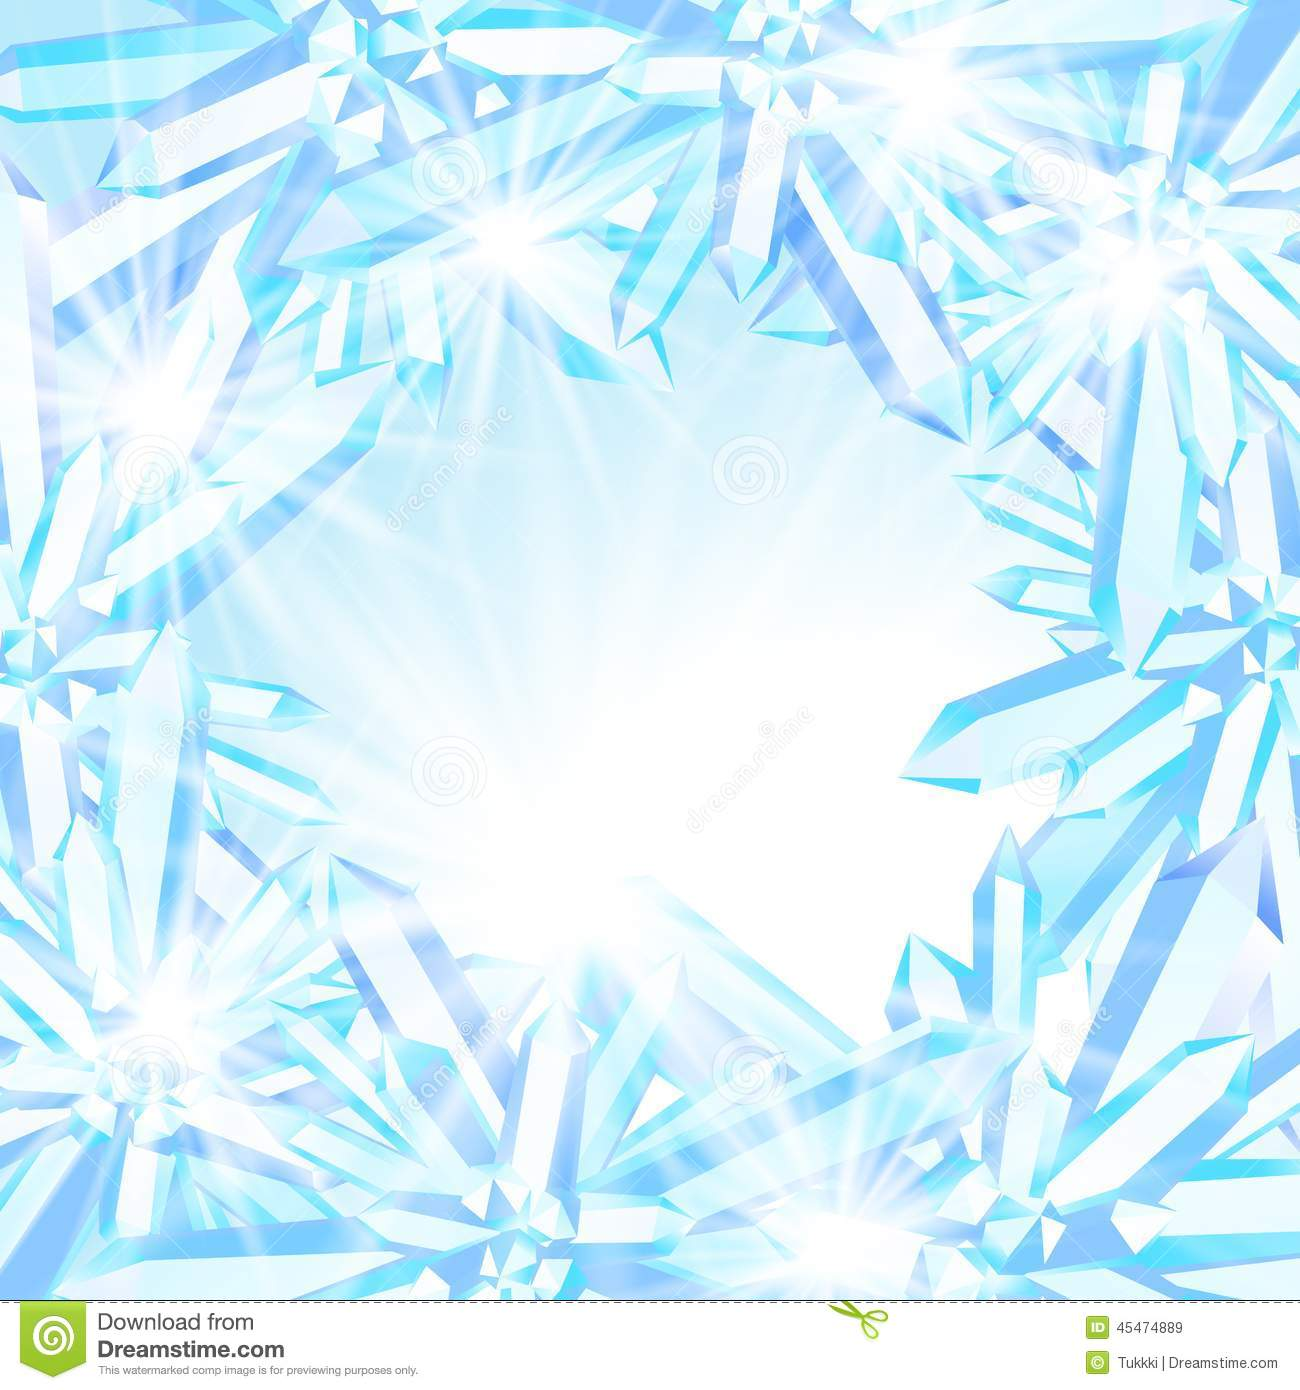 Sparkling Ice Crystals Stock Vector Image 45474889